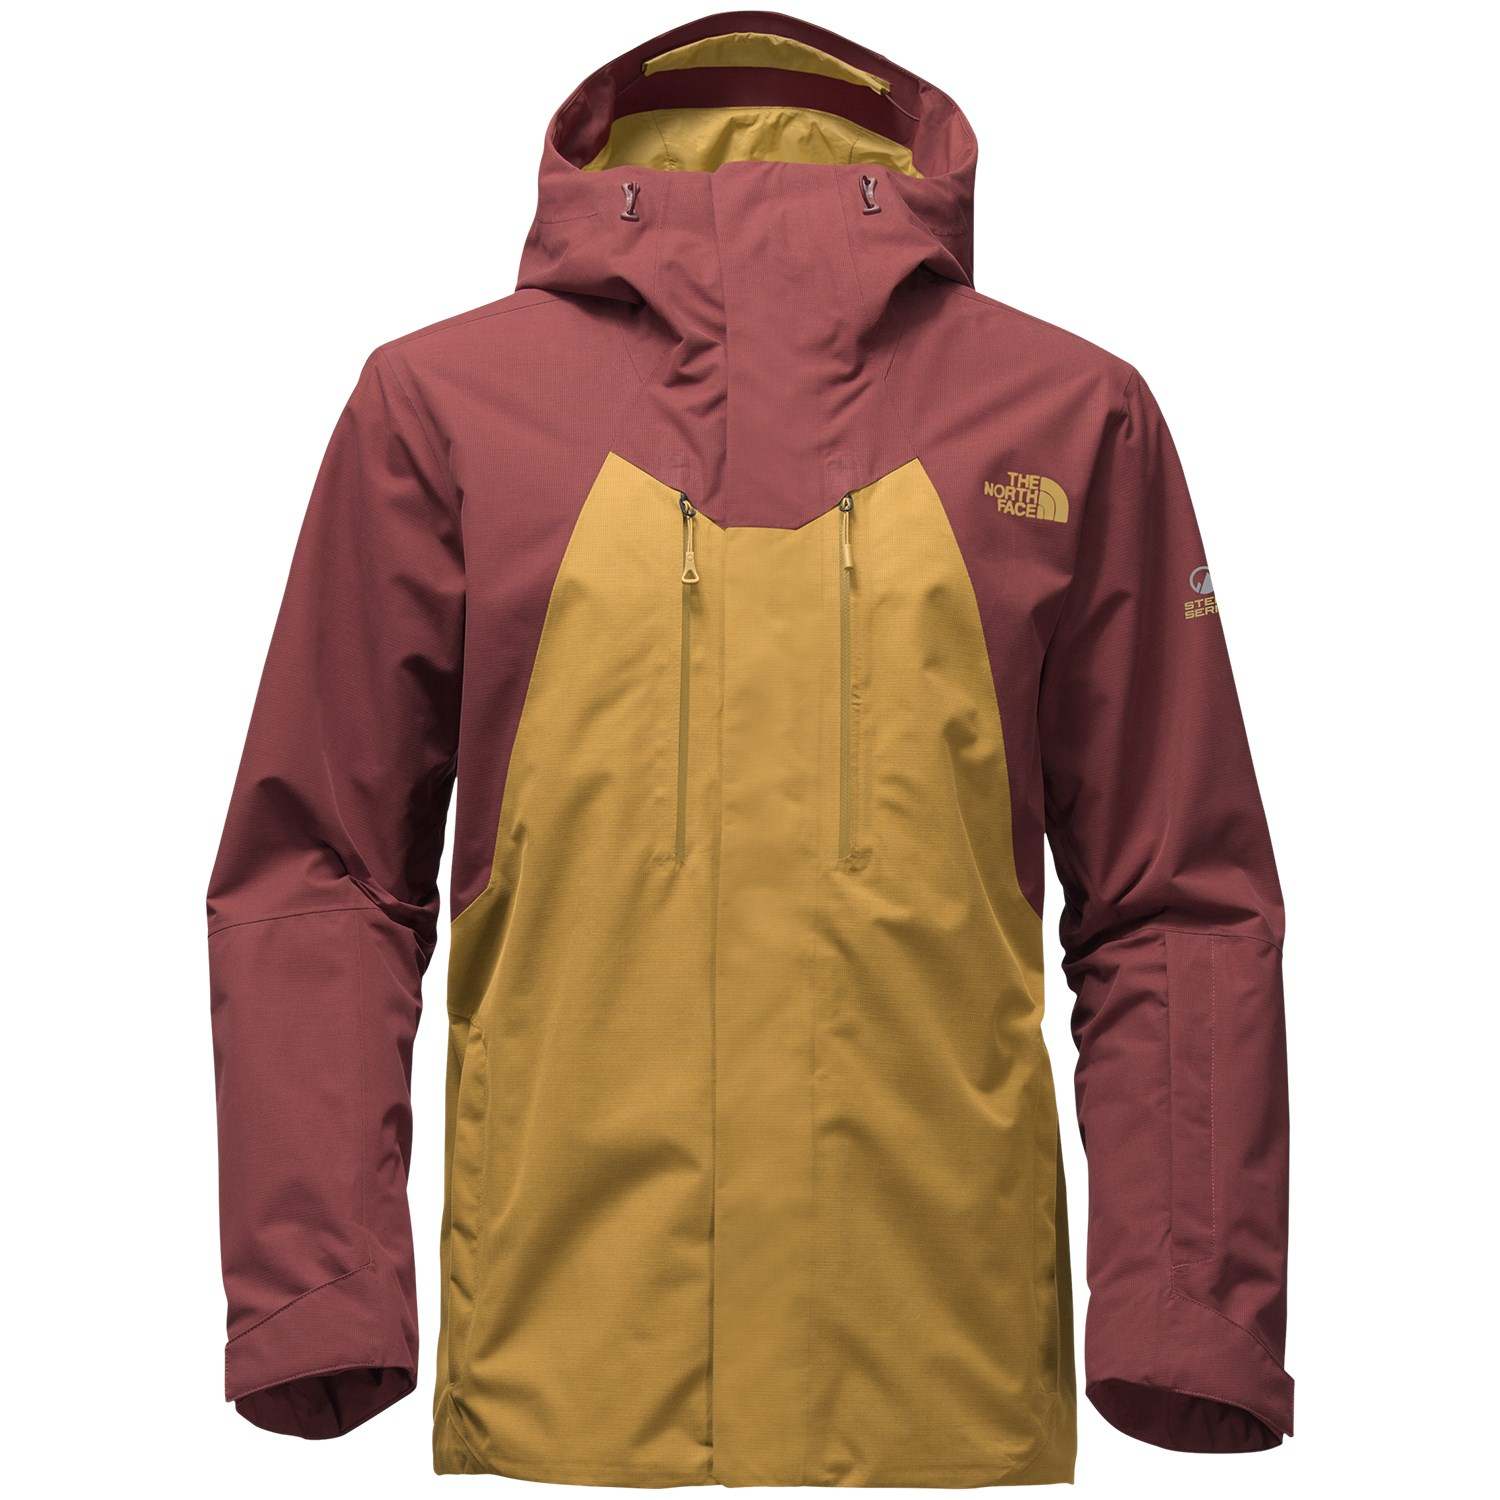 700daf9bd0b7 The North Face NFZ Jacket